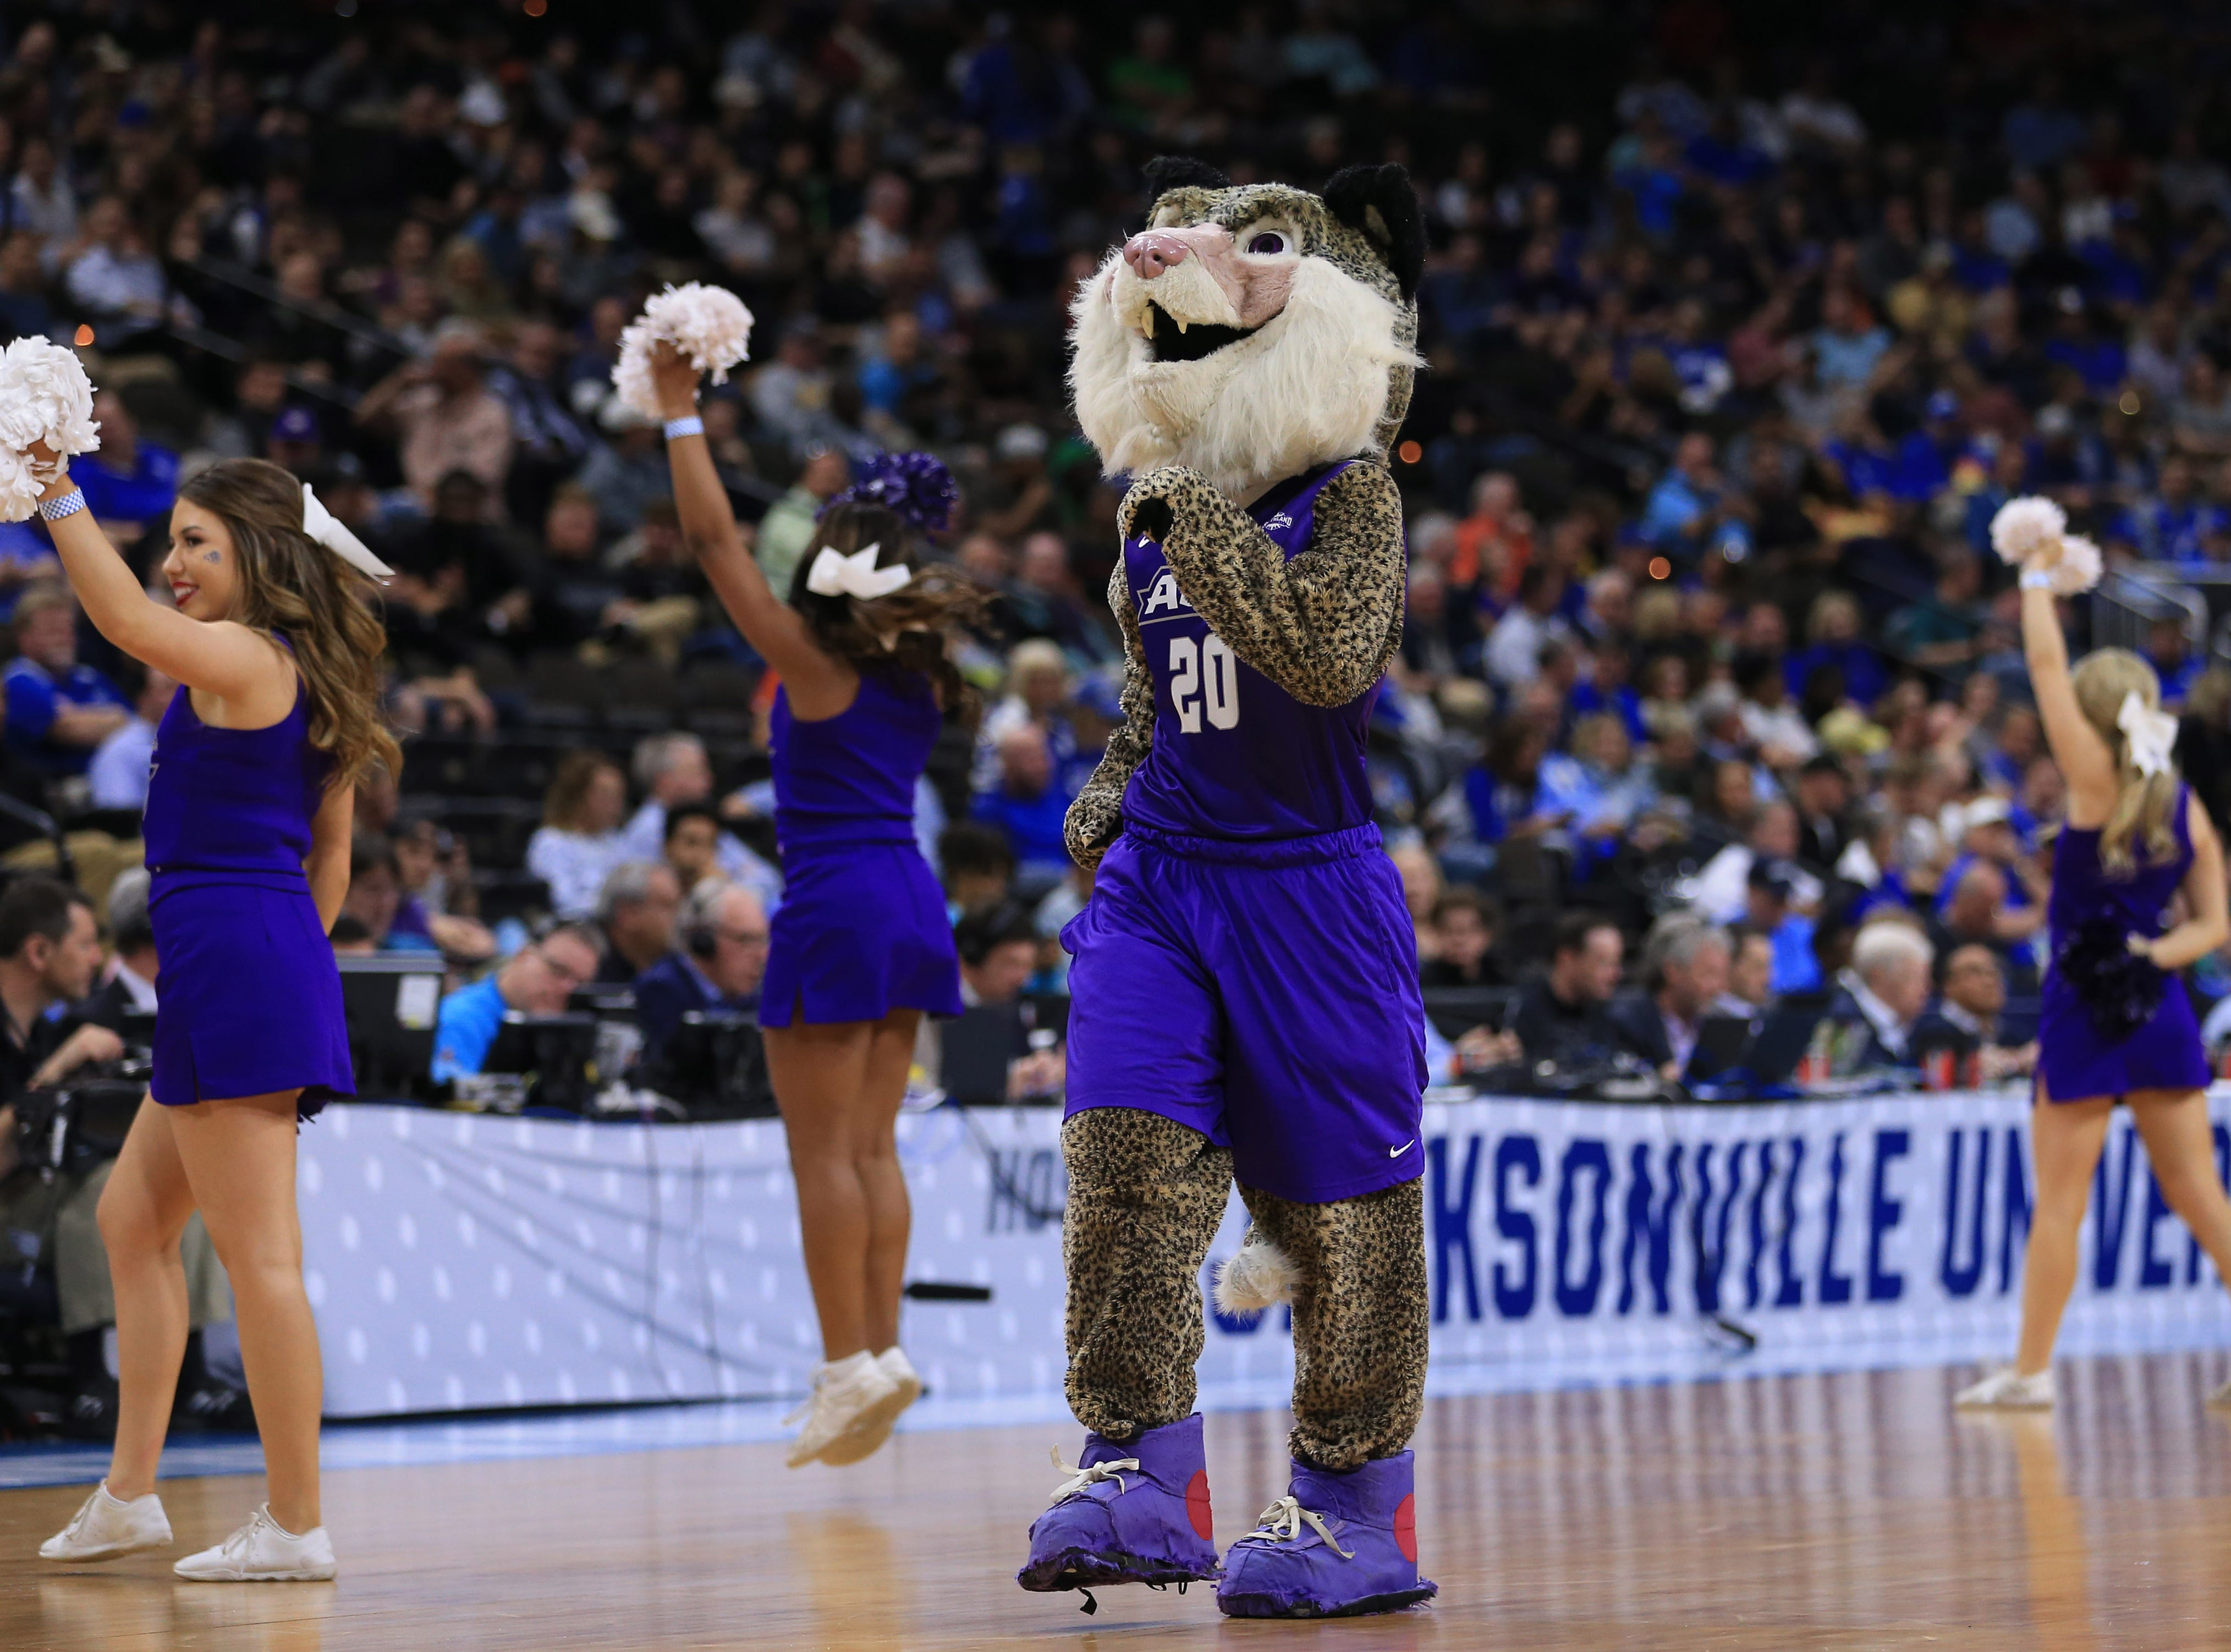 Mar 21, 2019; Jacksonville, FL, USA; The Abilene Christian Wildcats mascot and cheerleaders dance on the court during a stoppage in play against the Kentucky Wildcats the first half against the Kentucky Wildcats in the first round of the 2019 NCAA Tournament at Jacksonville Veterans Memorial Arena. Mandatory Credit: Matt Stamey-USA TODAY Sports